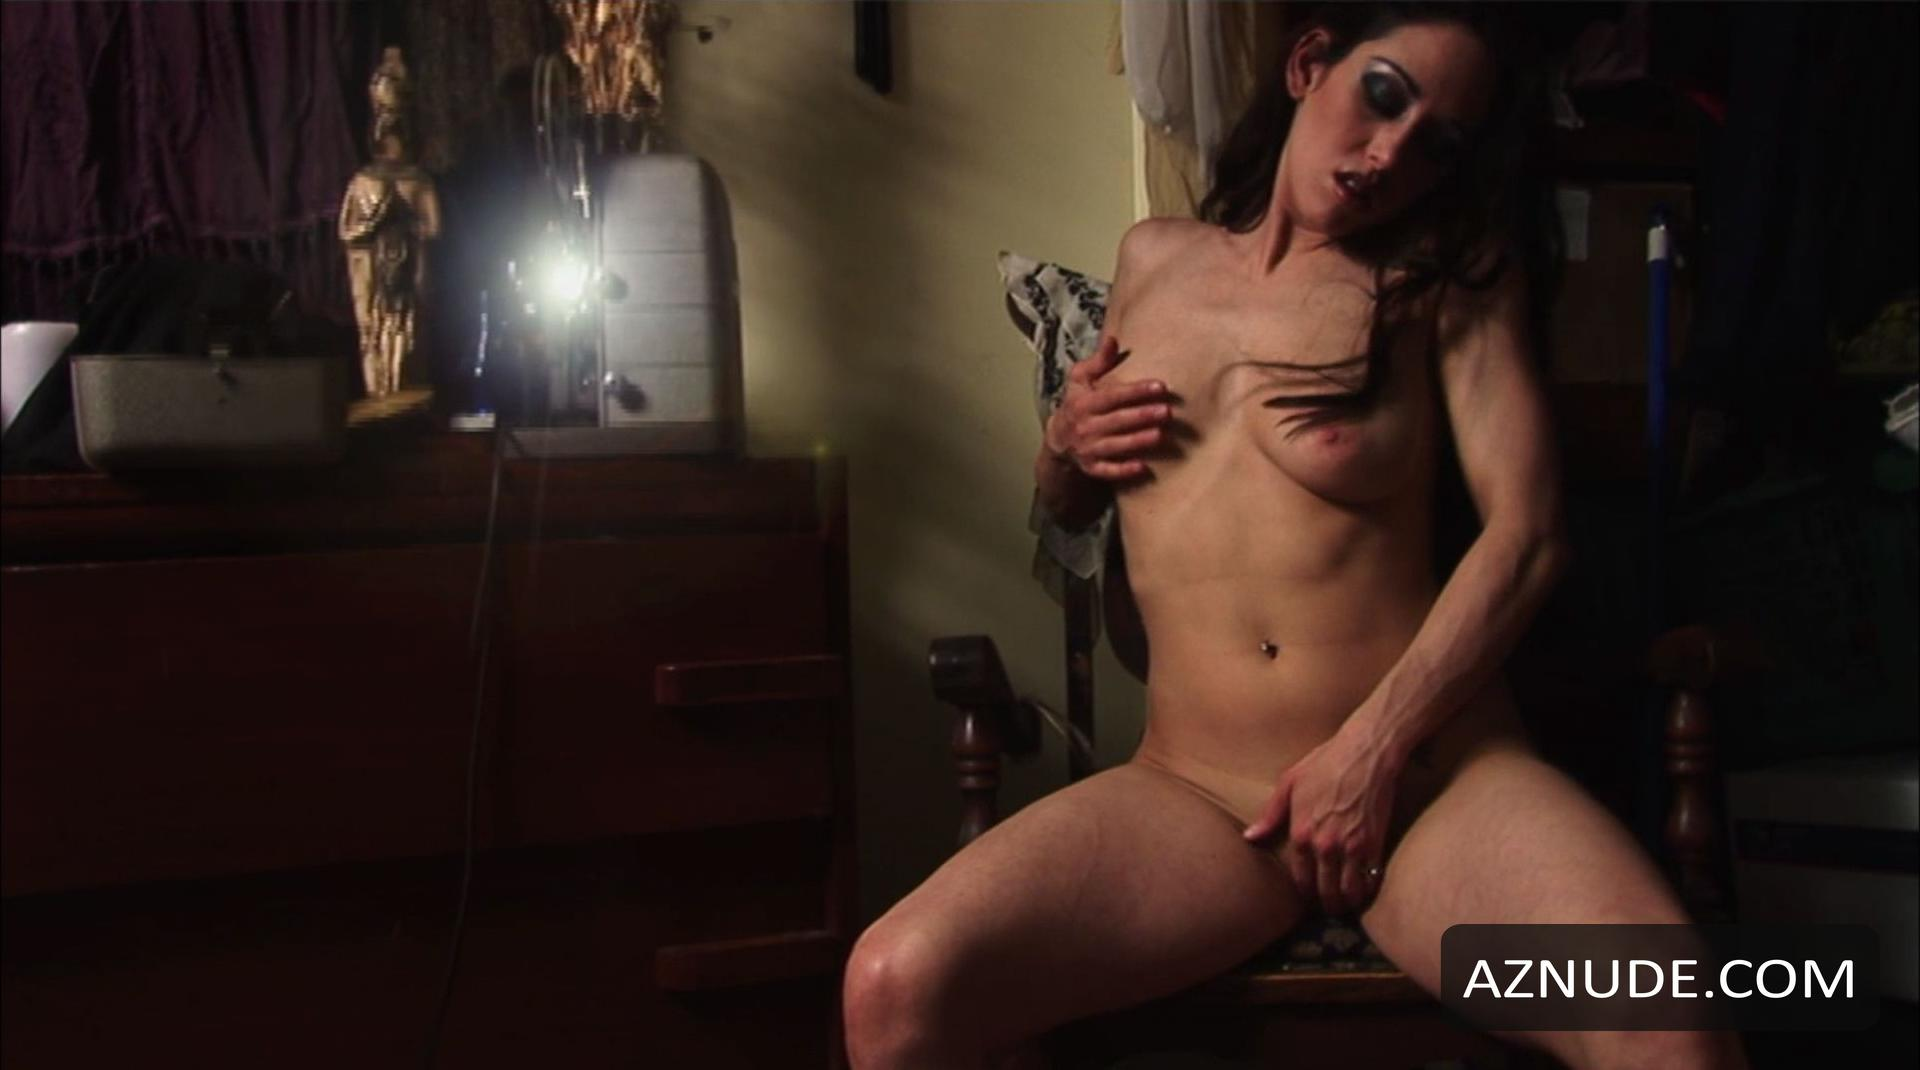 Laure marsac nude nicole dubois nude interview with the vampire